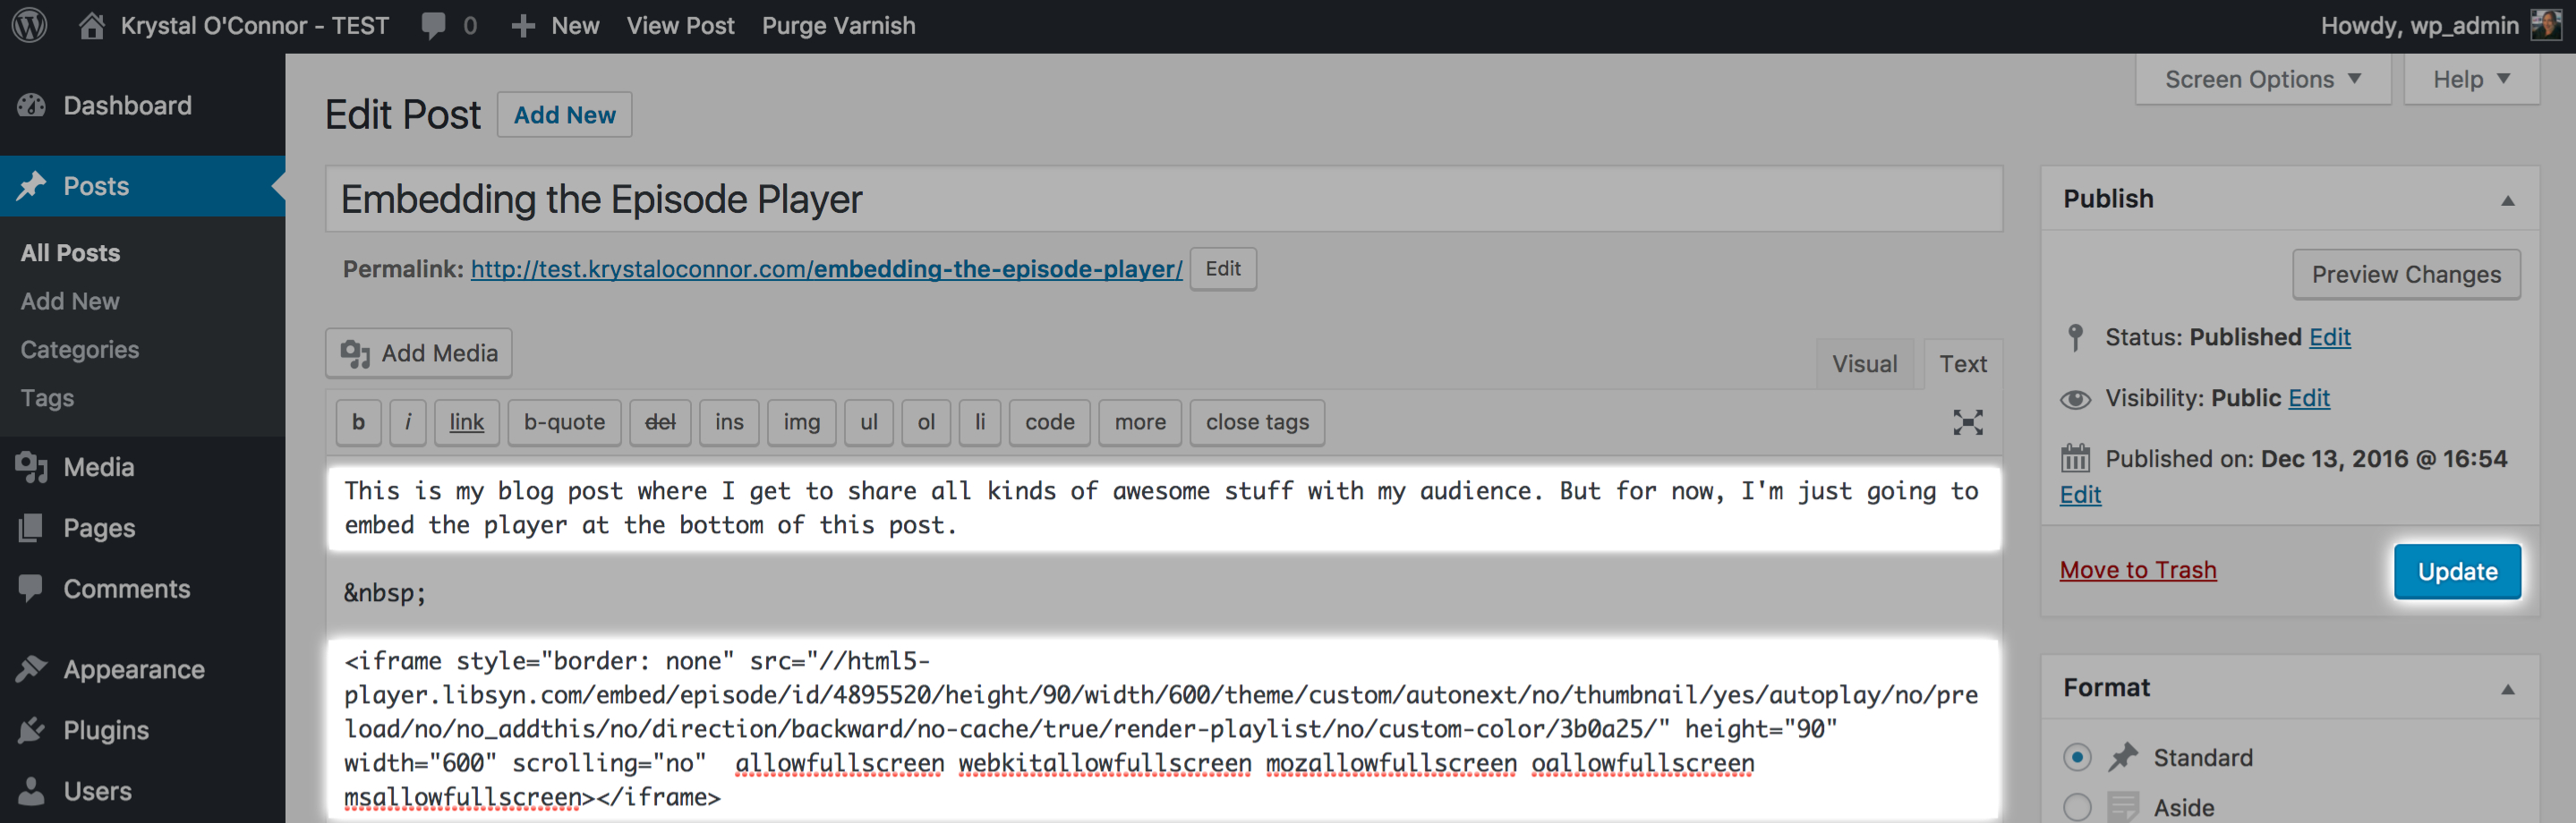 Embedding the Player in a WordPress Post